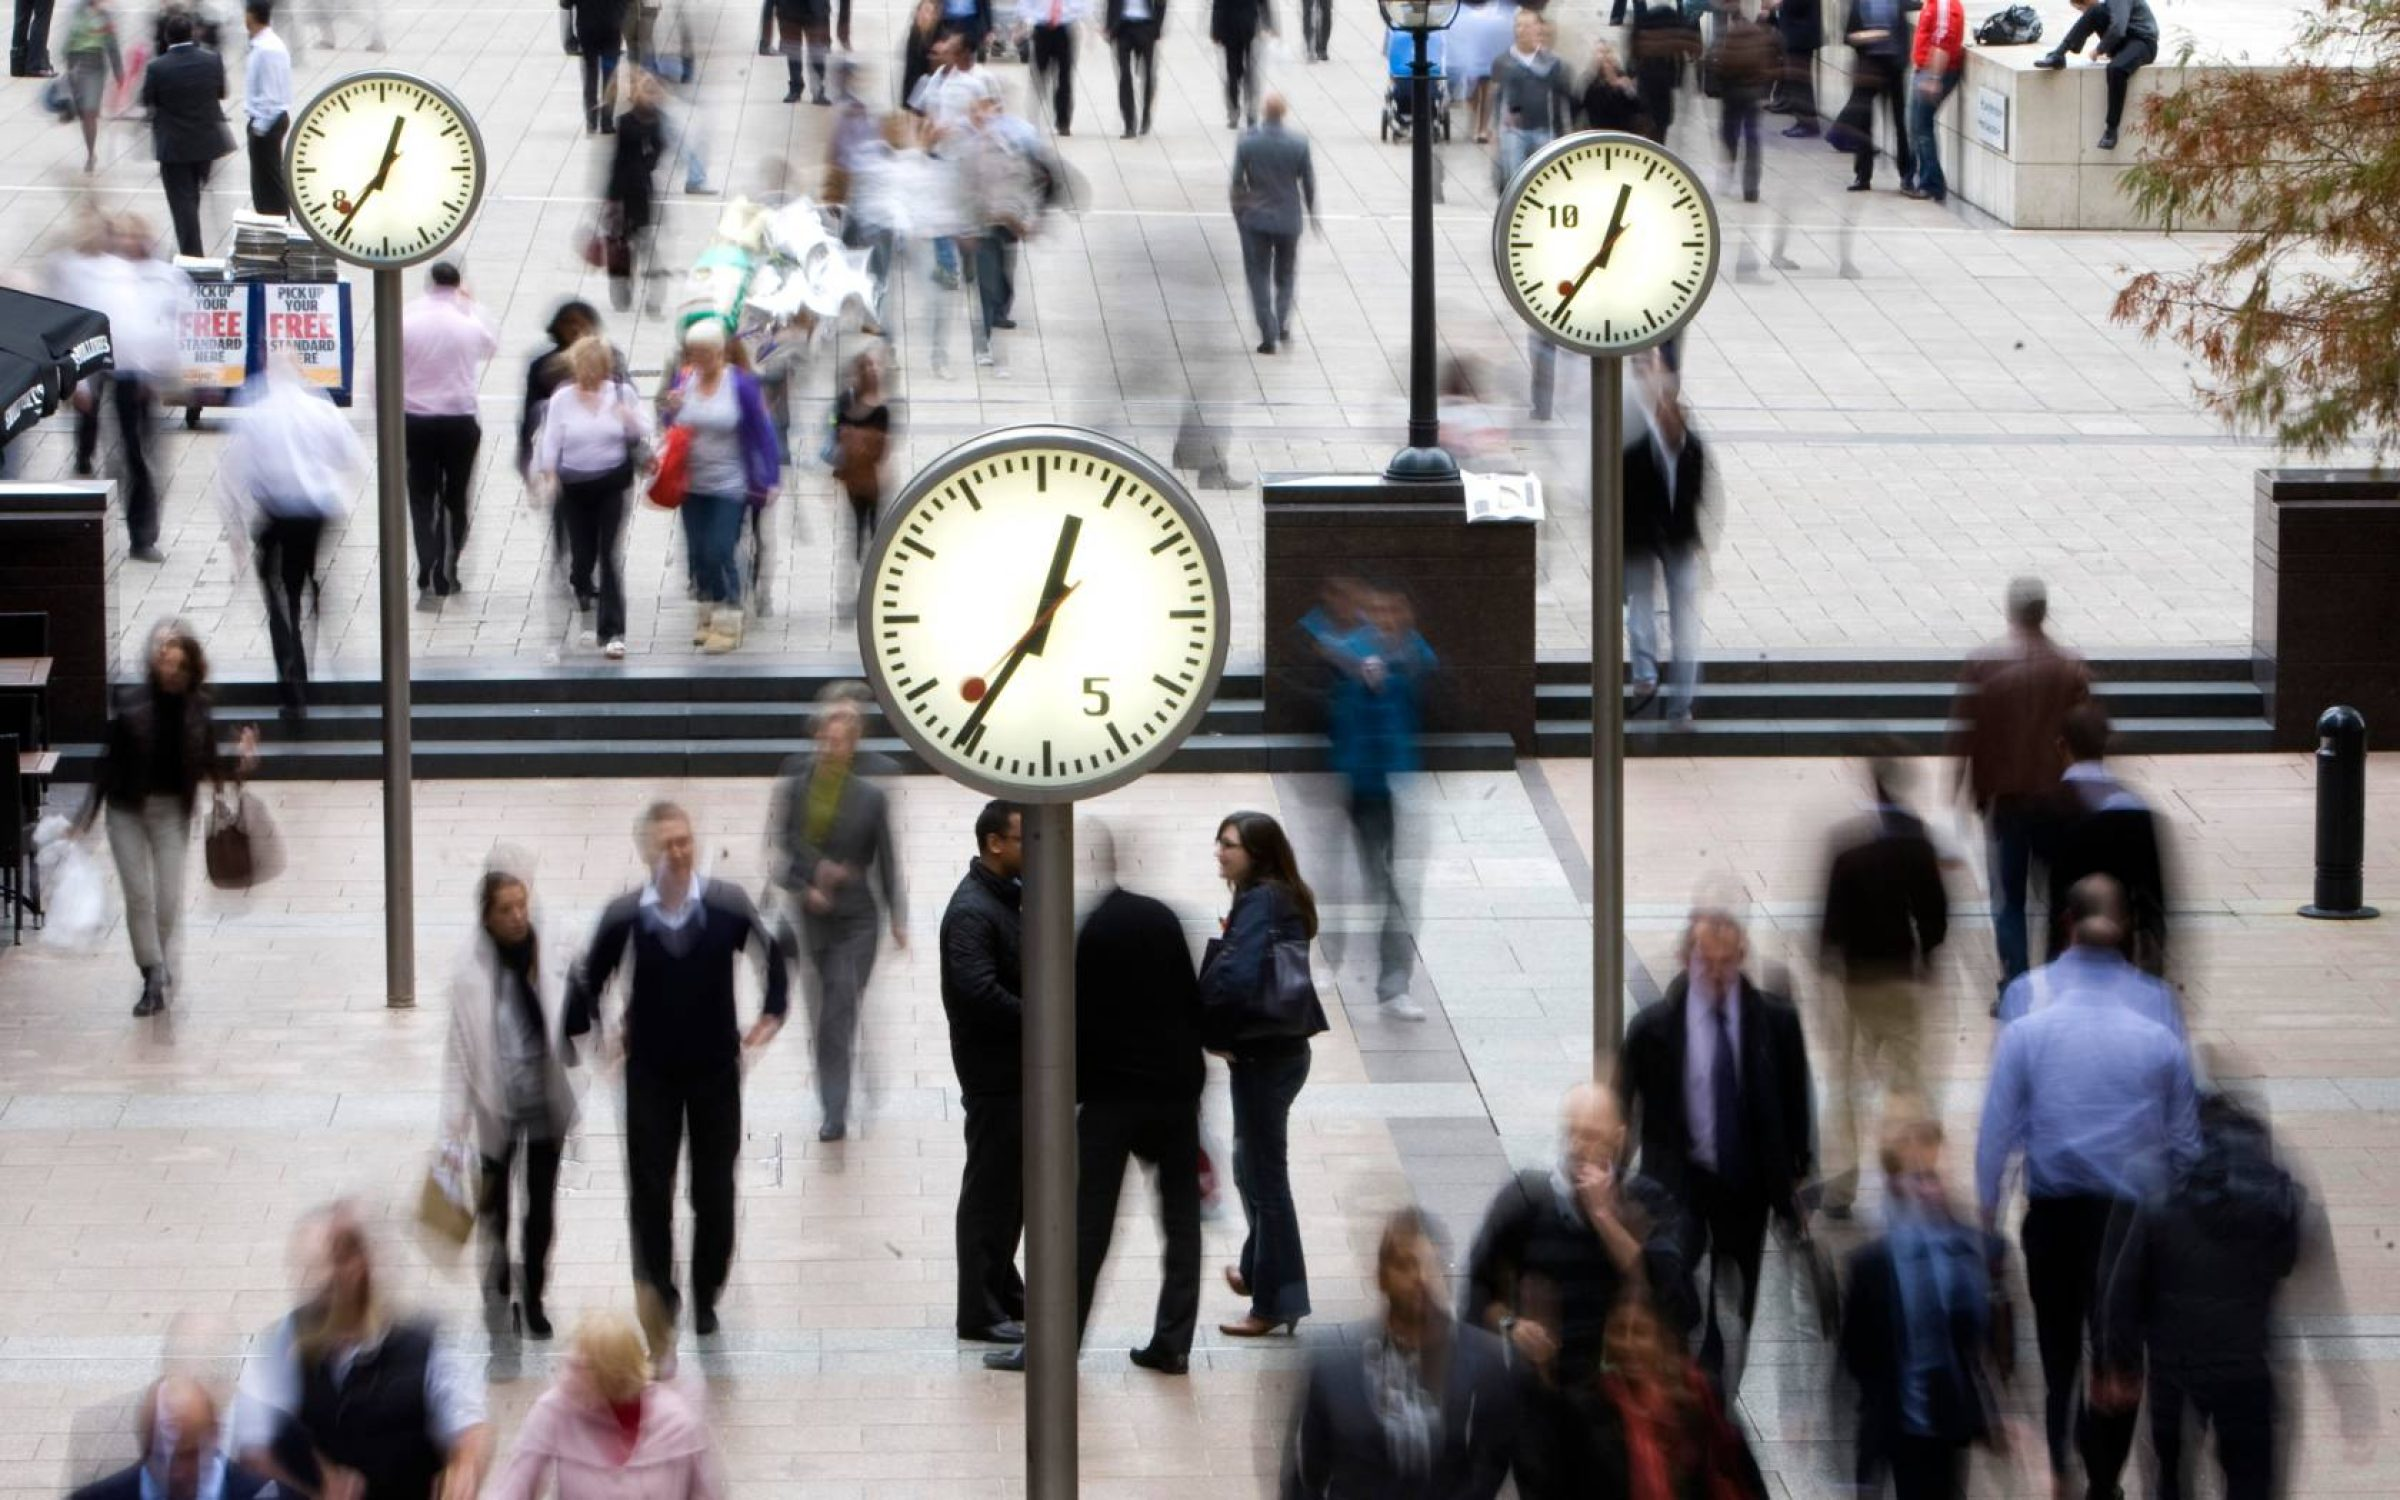 Pedestrians walk past clocks in the financial district of Canary Wharf, London.